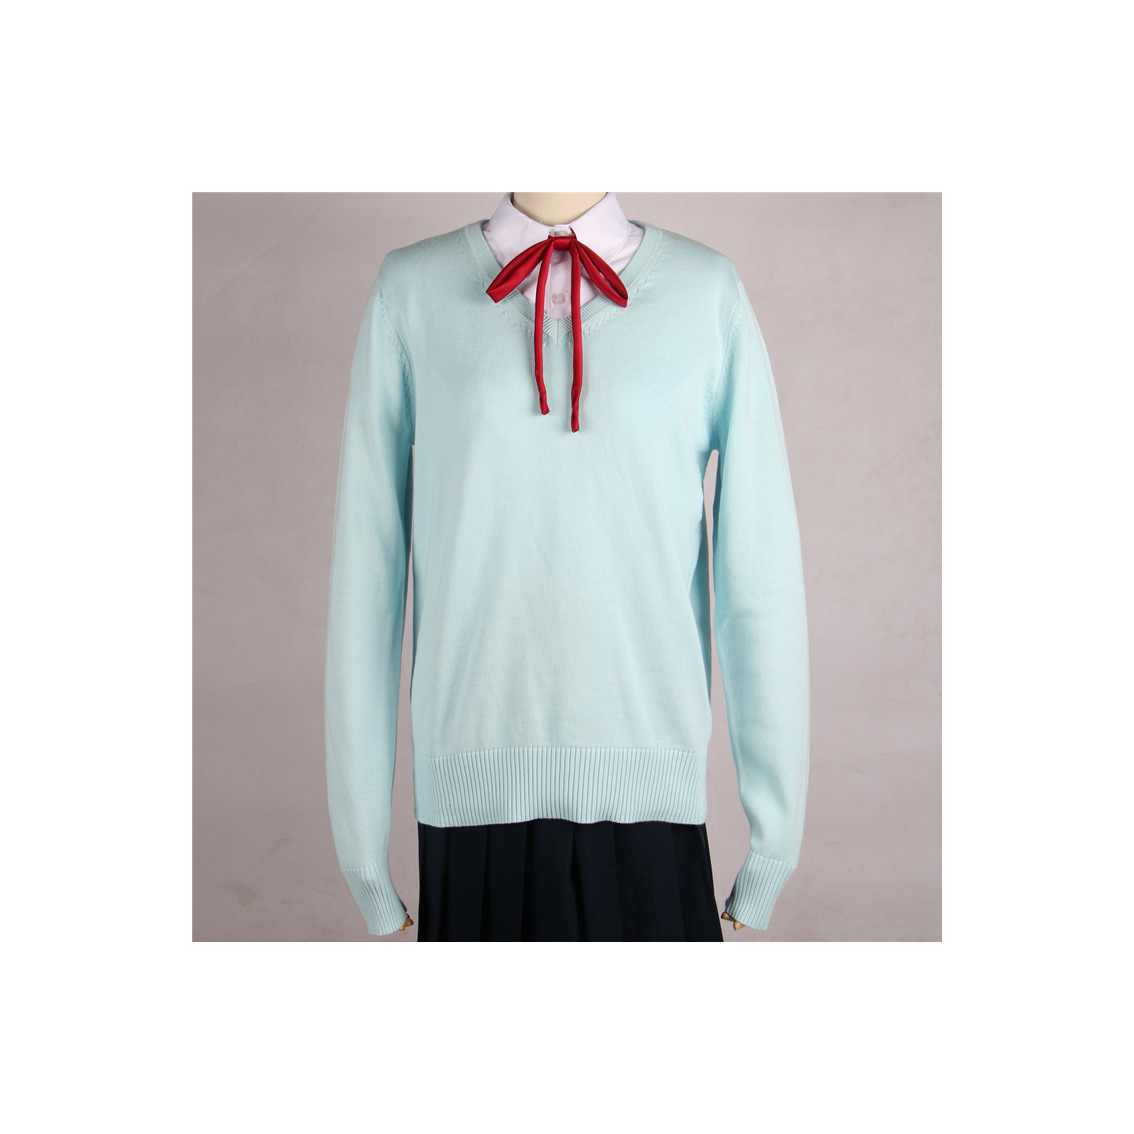 Japanese School Harajuku Style JK Uniforms Sweater Long Sleeve Students Knitted V-Neck Sweater aqua